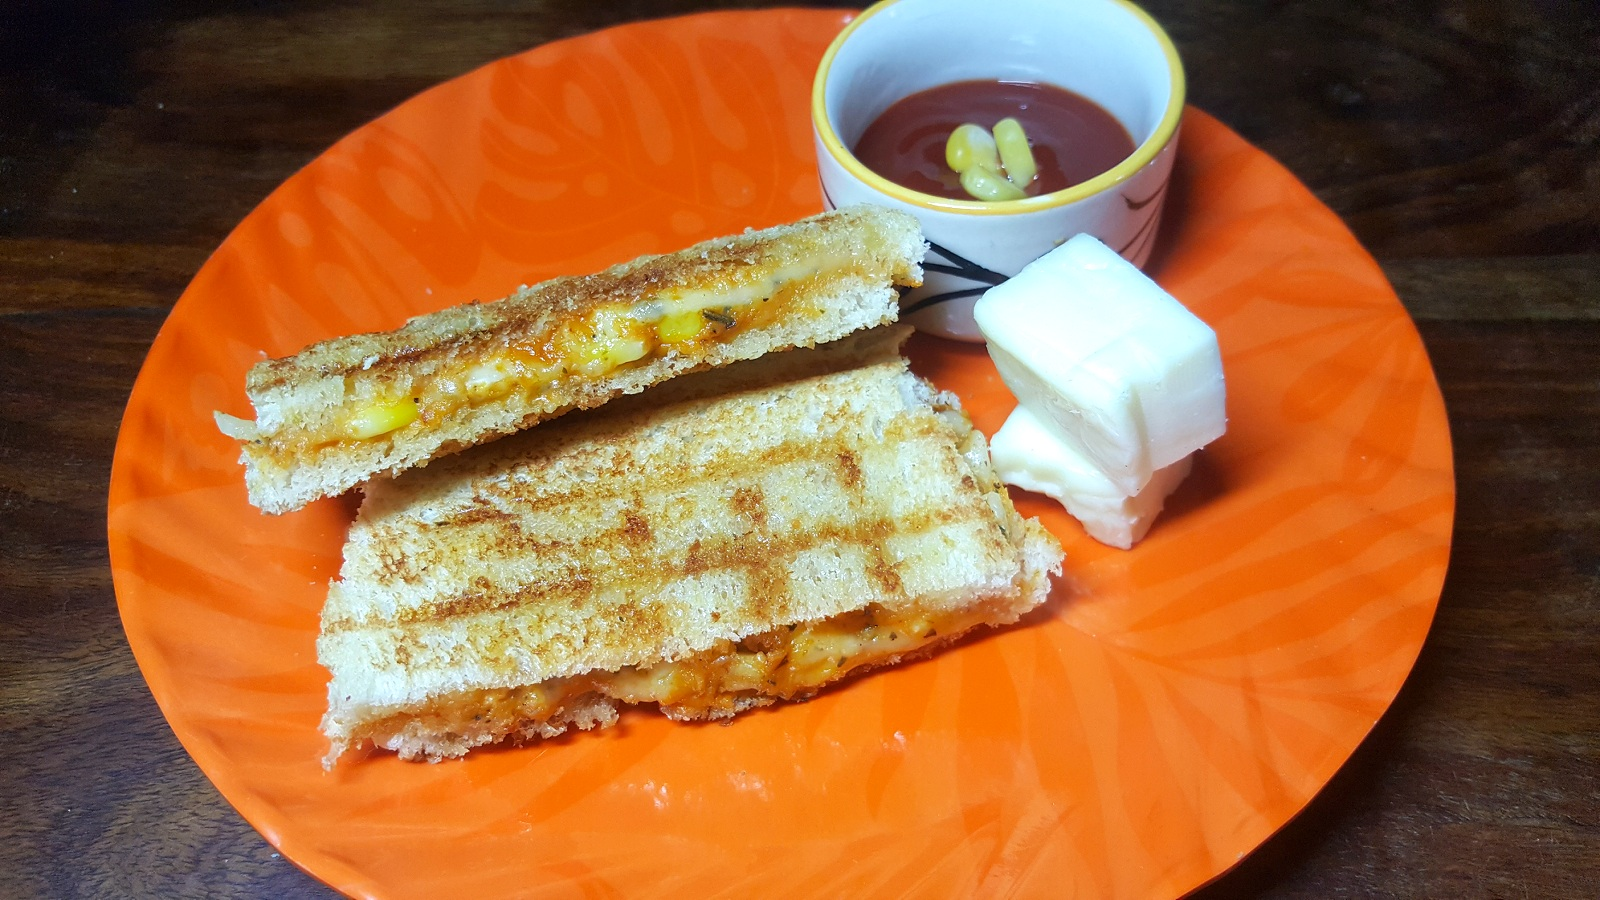 CHEESE CORN SANDWICH